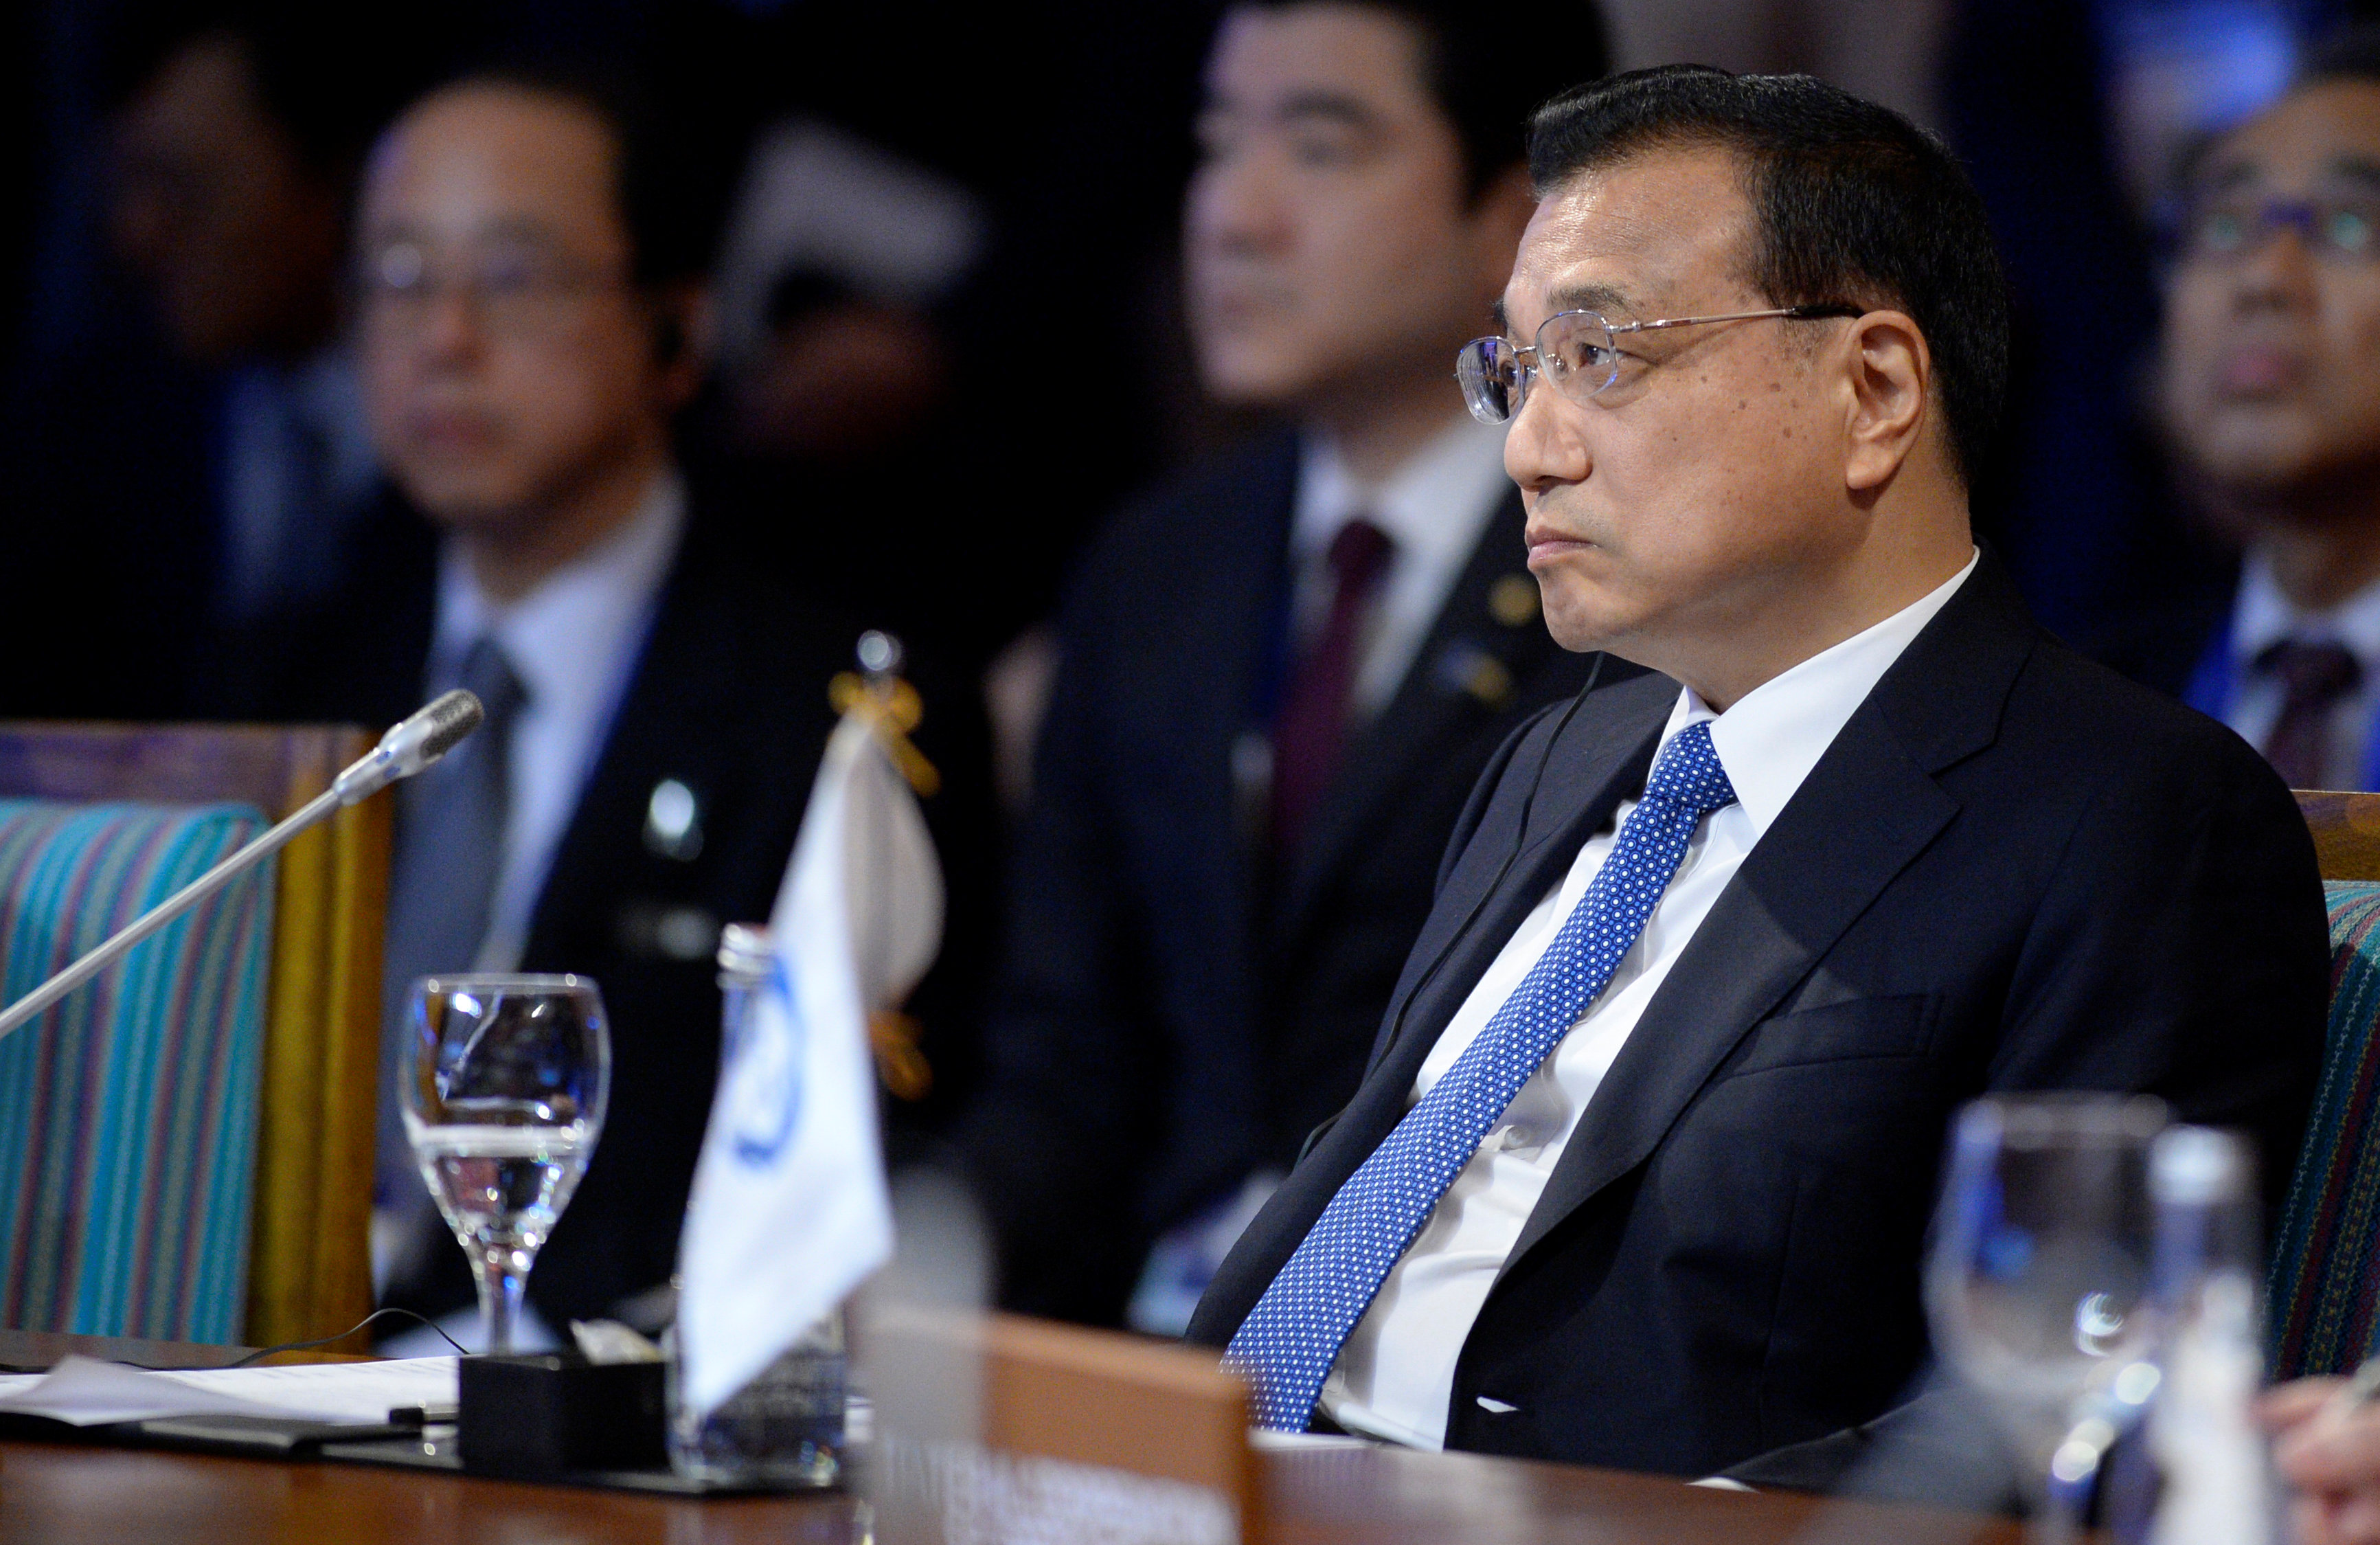 South China Sea code of conduct talks to be 'stabilizer' for region: China premier